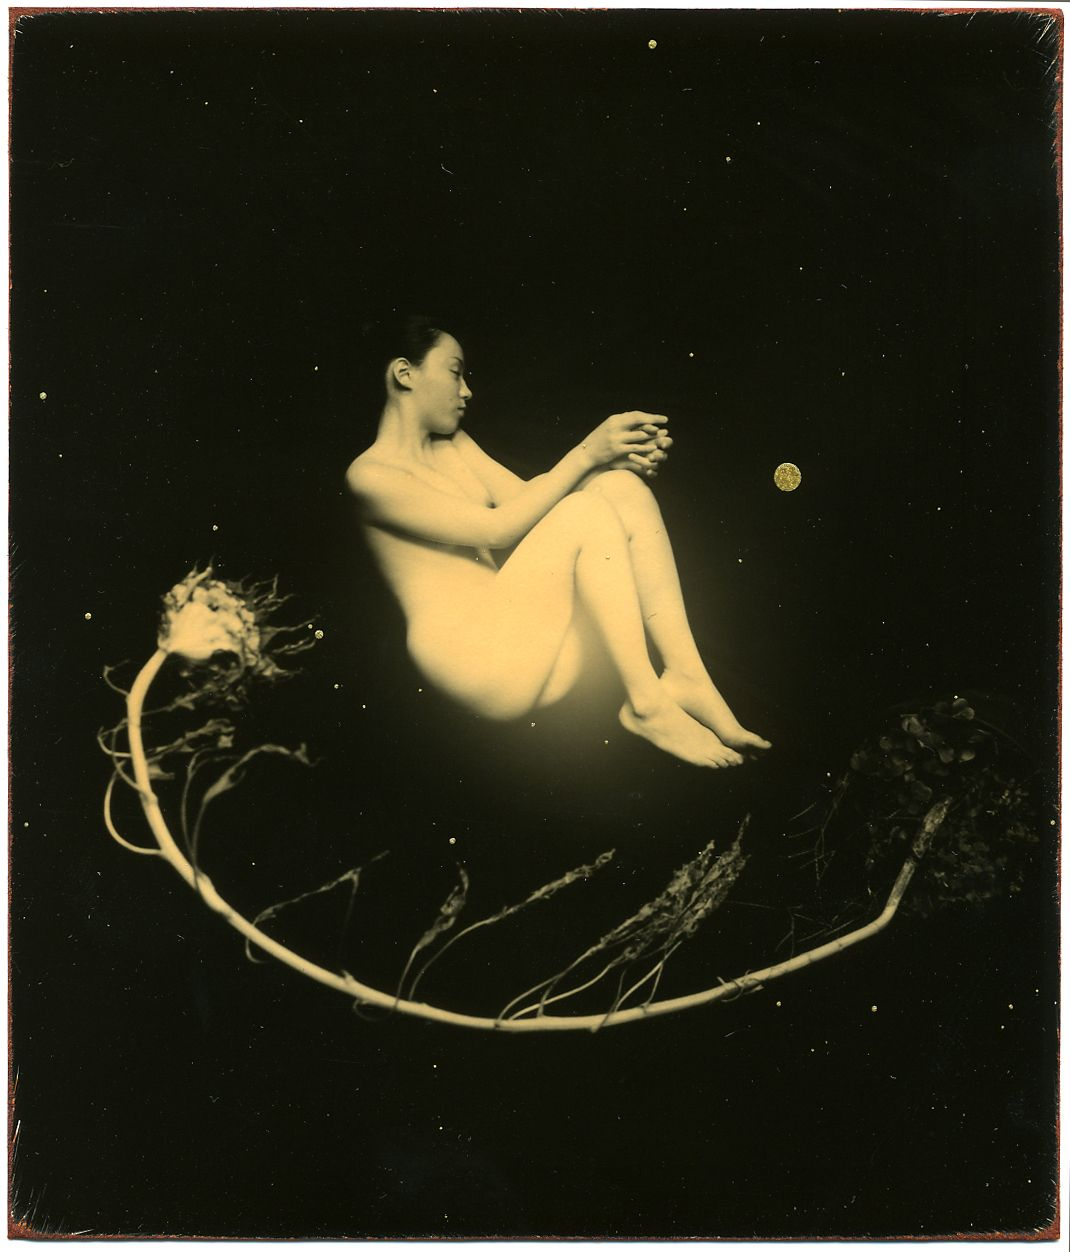 Masao Yamamoto,Untitled #1414from the seriesNakazora. Hand-toned gelatin silver print with gold paint,, 4 x 3 1/2 inches.